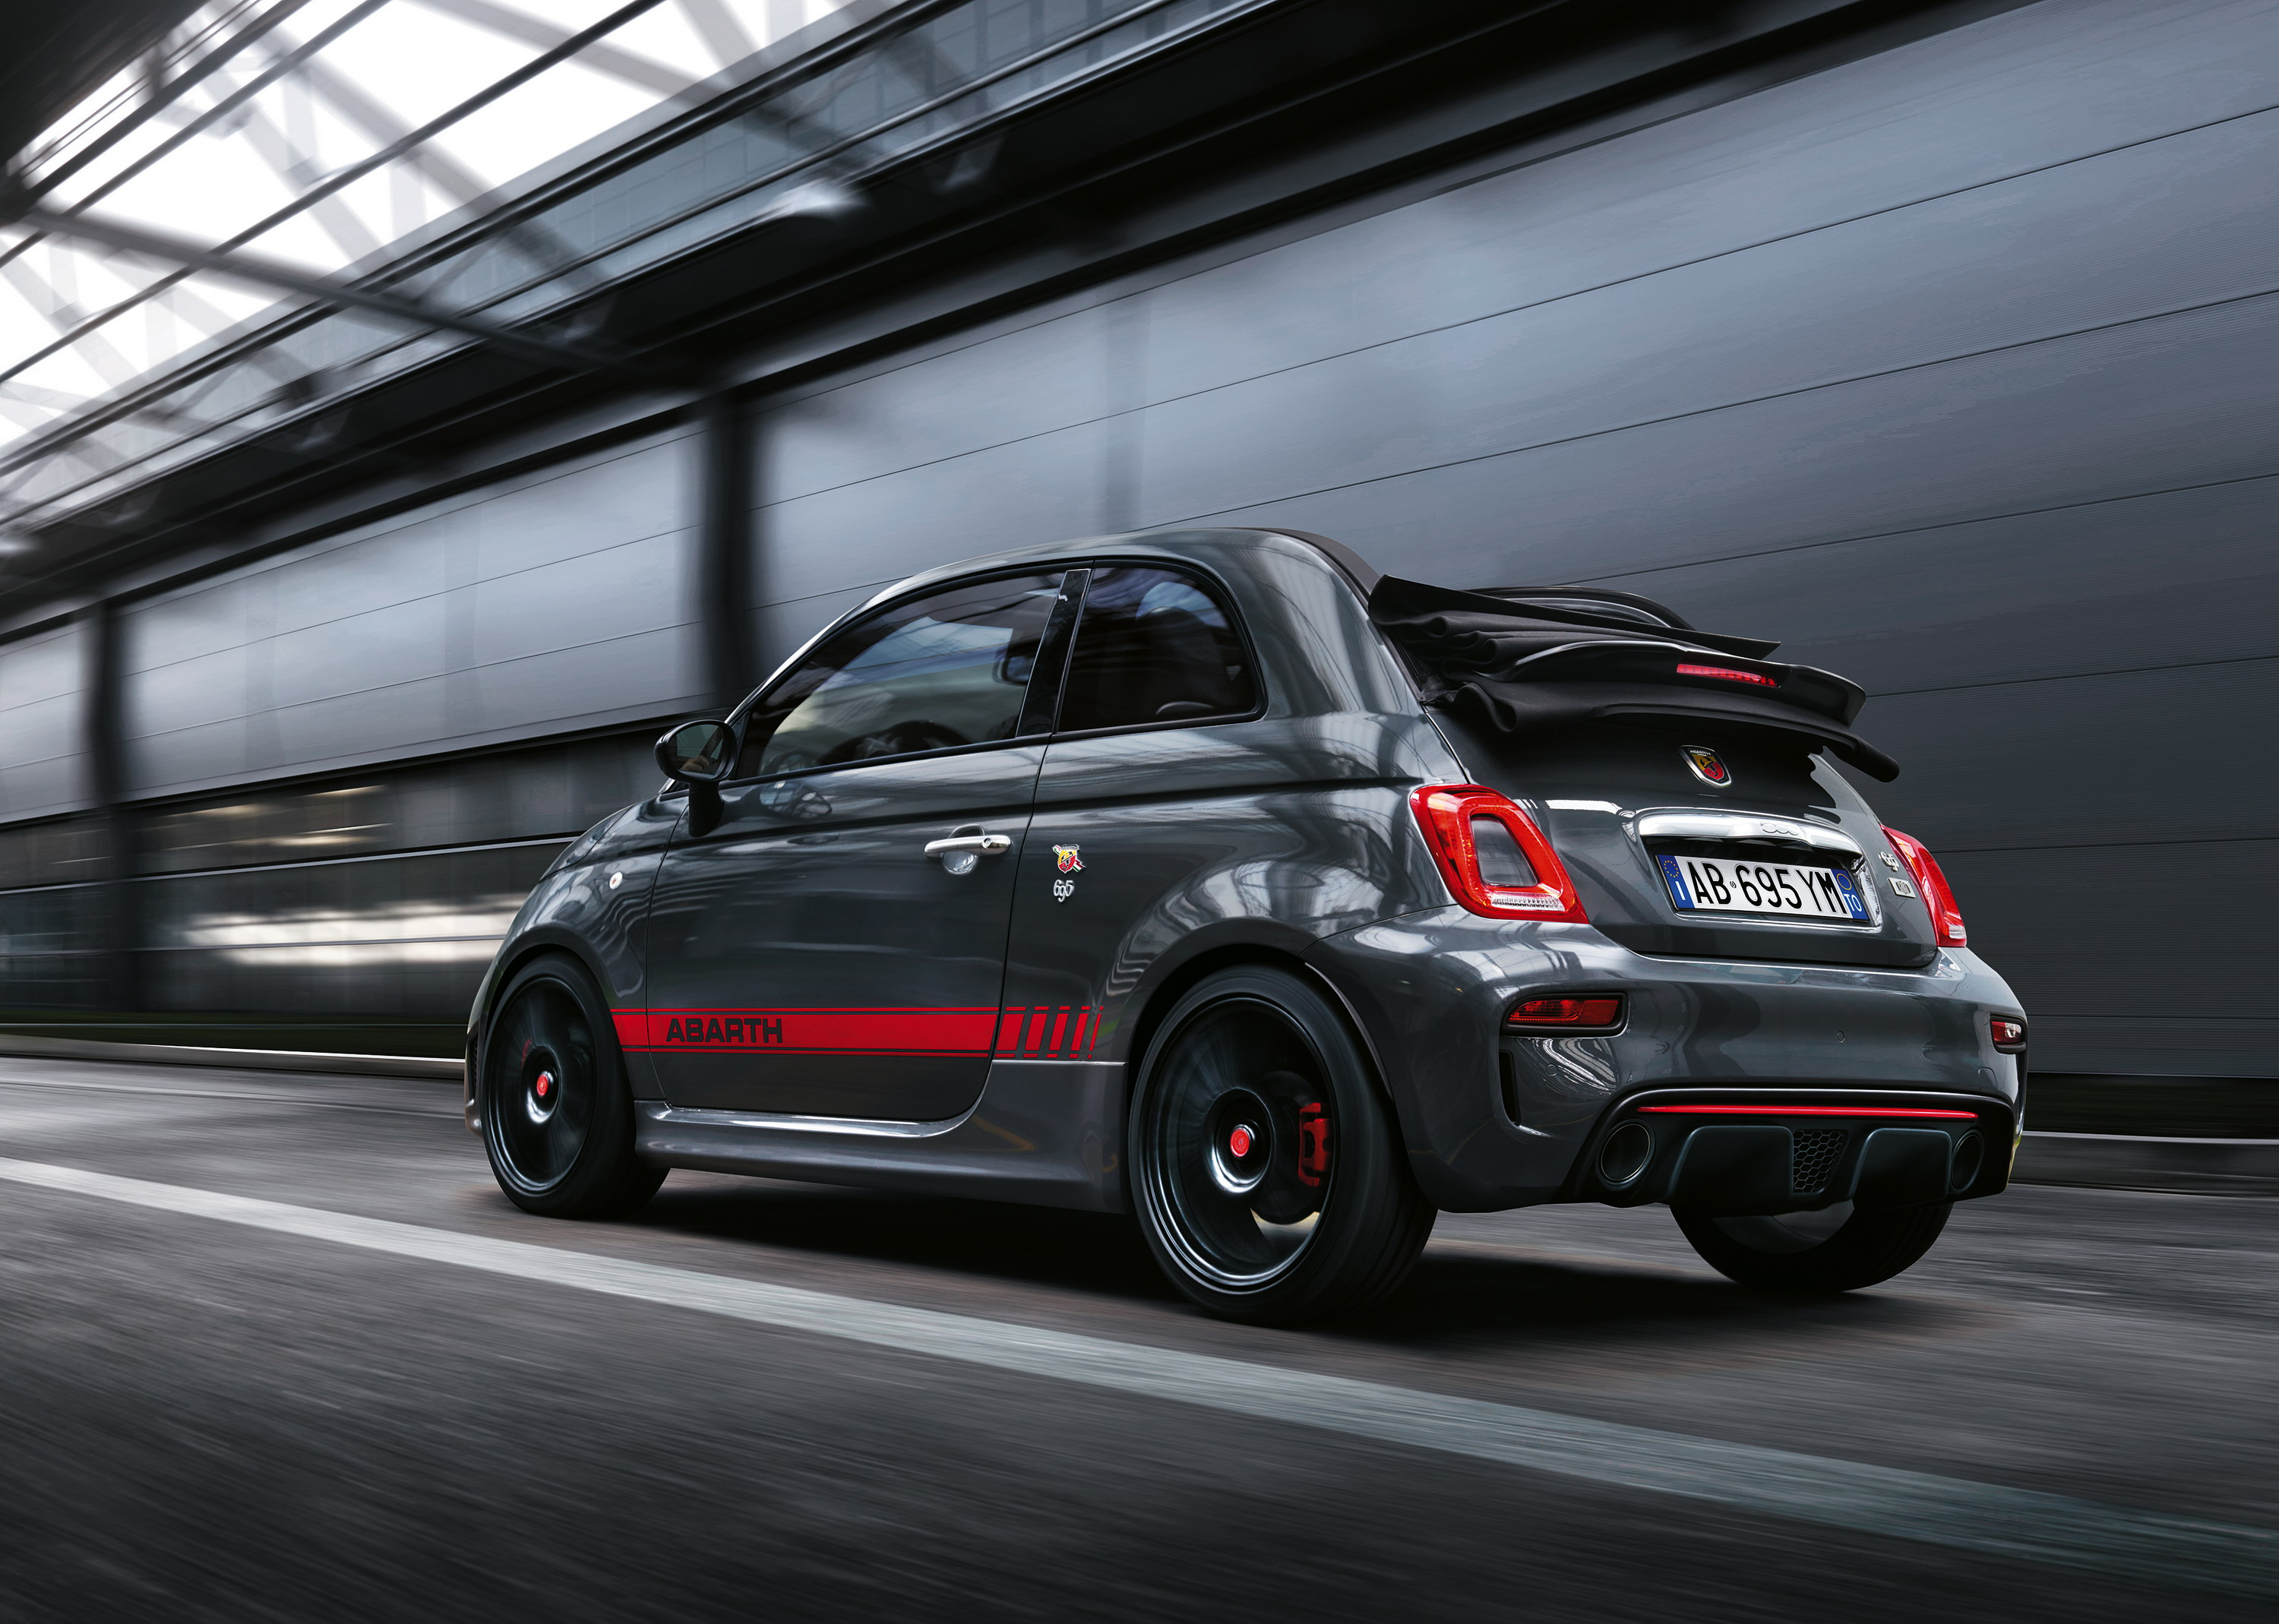 2017 Abarth 695 XSR Yamaha Limited Edition | Top Speed. »